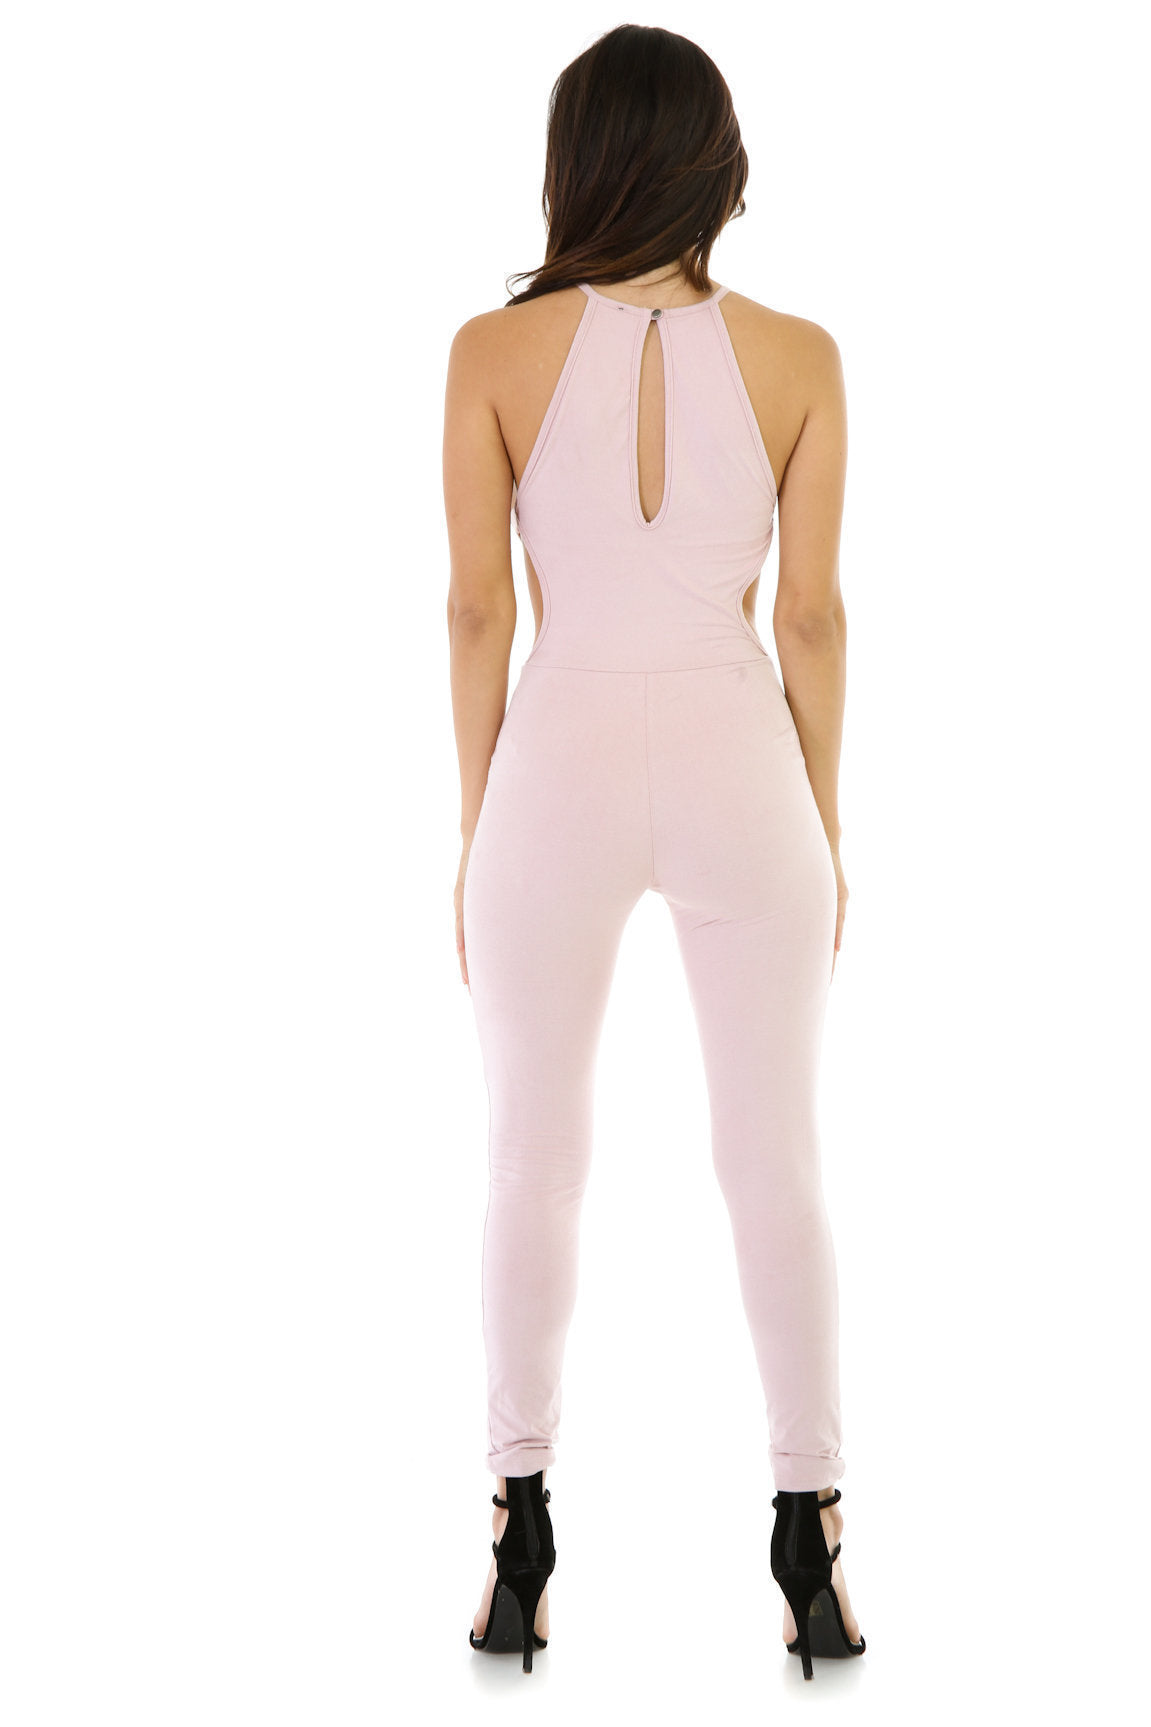 Seek Peek Sway Jumpsuit